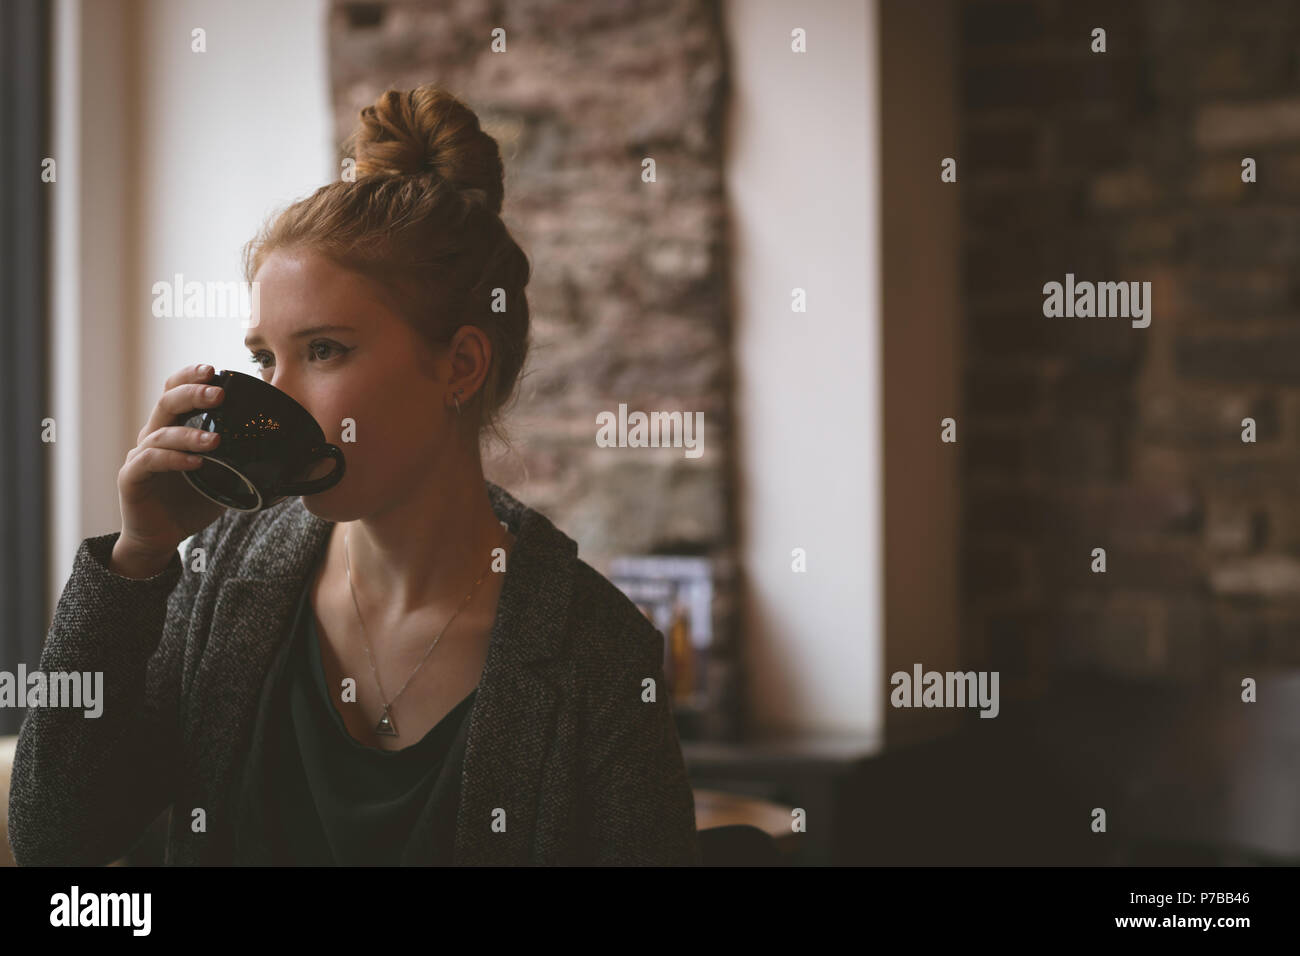 Woman having coffee at cafe Photo Stock